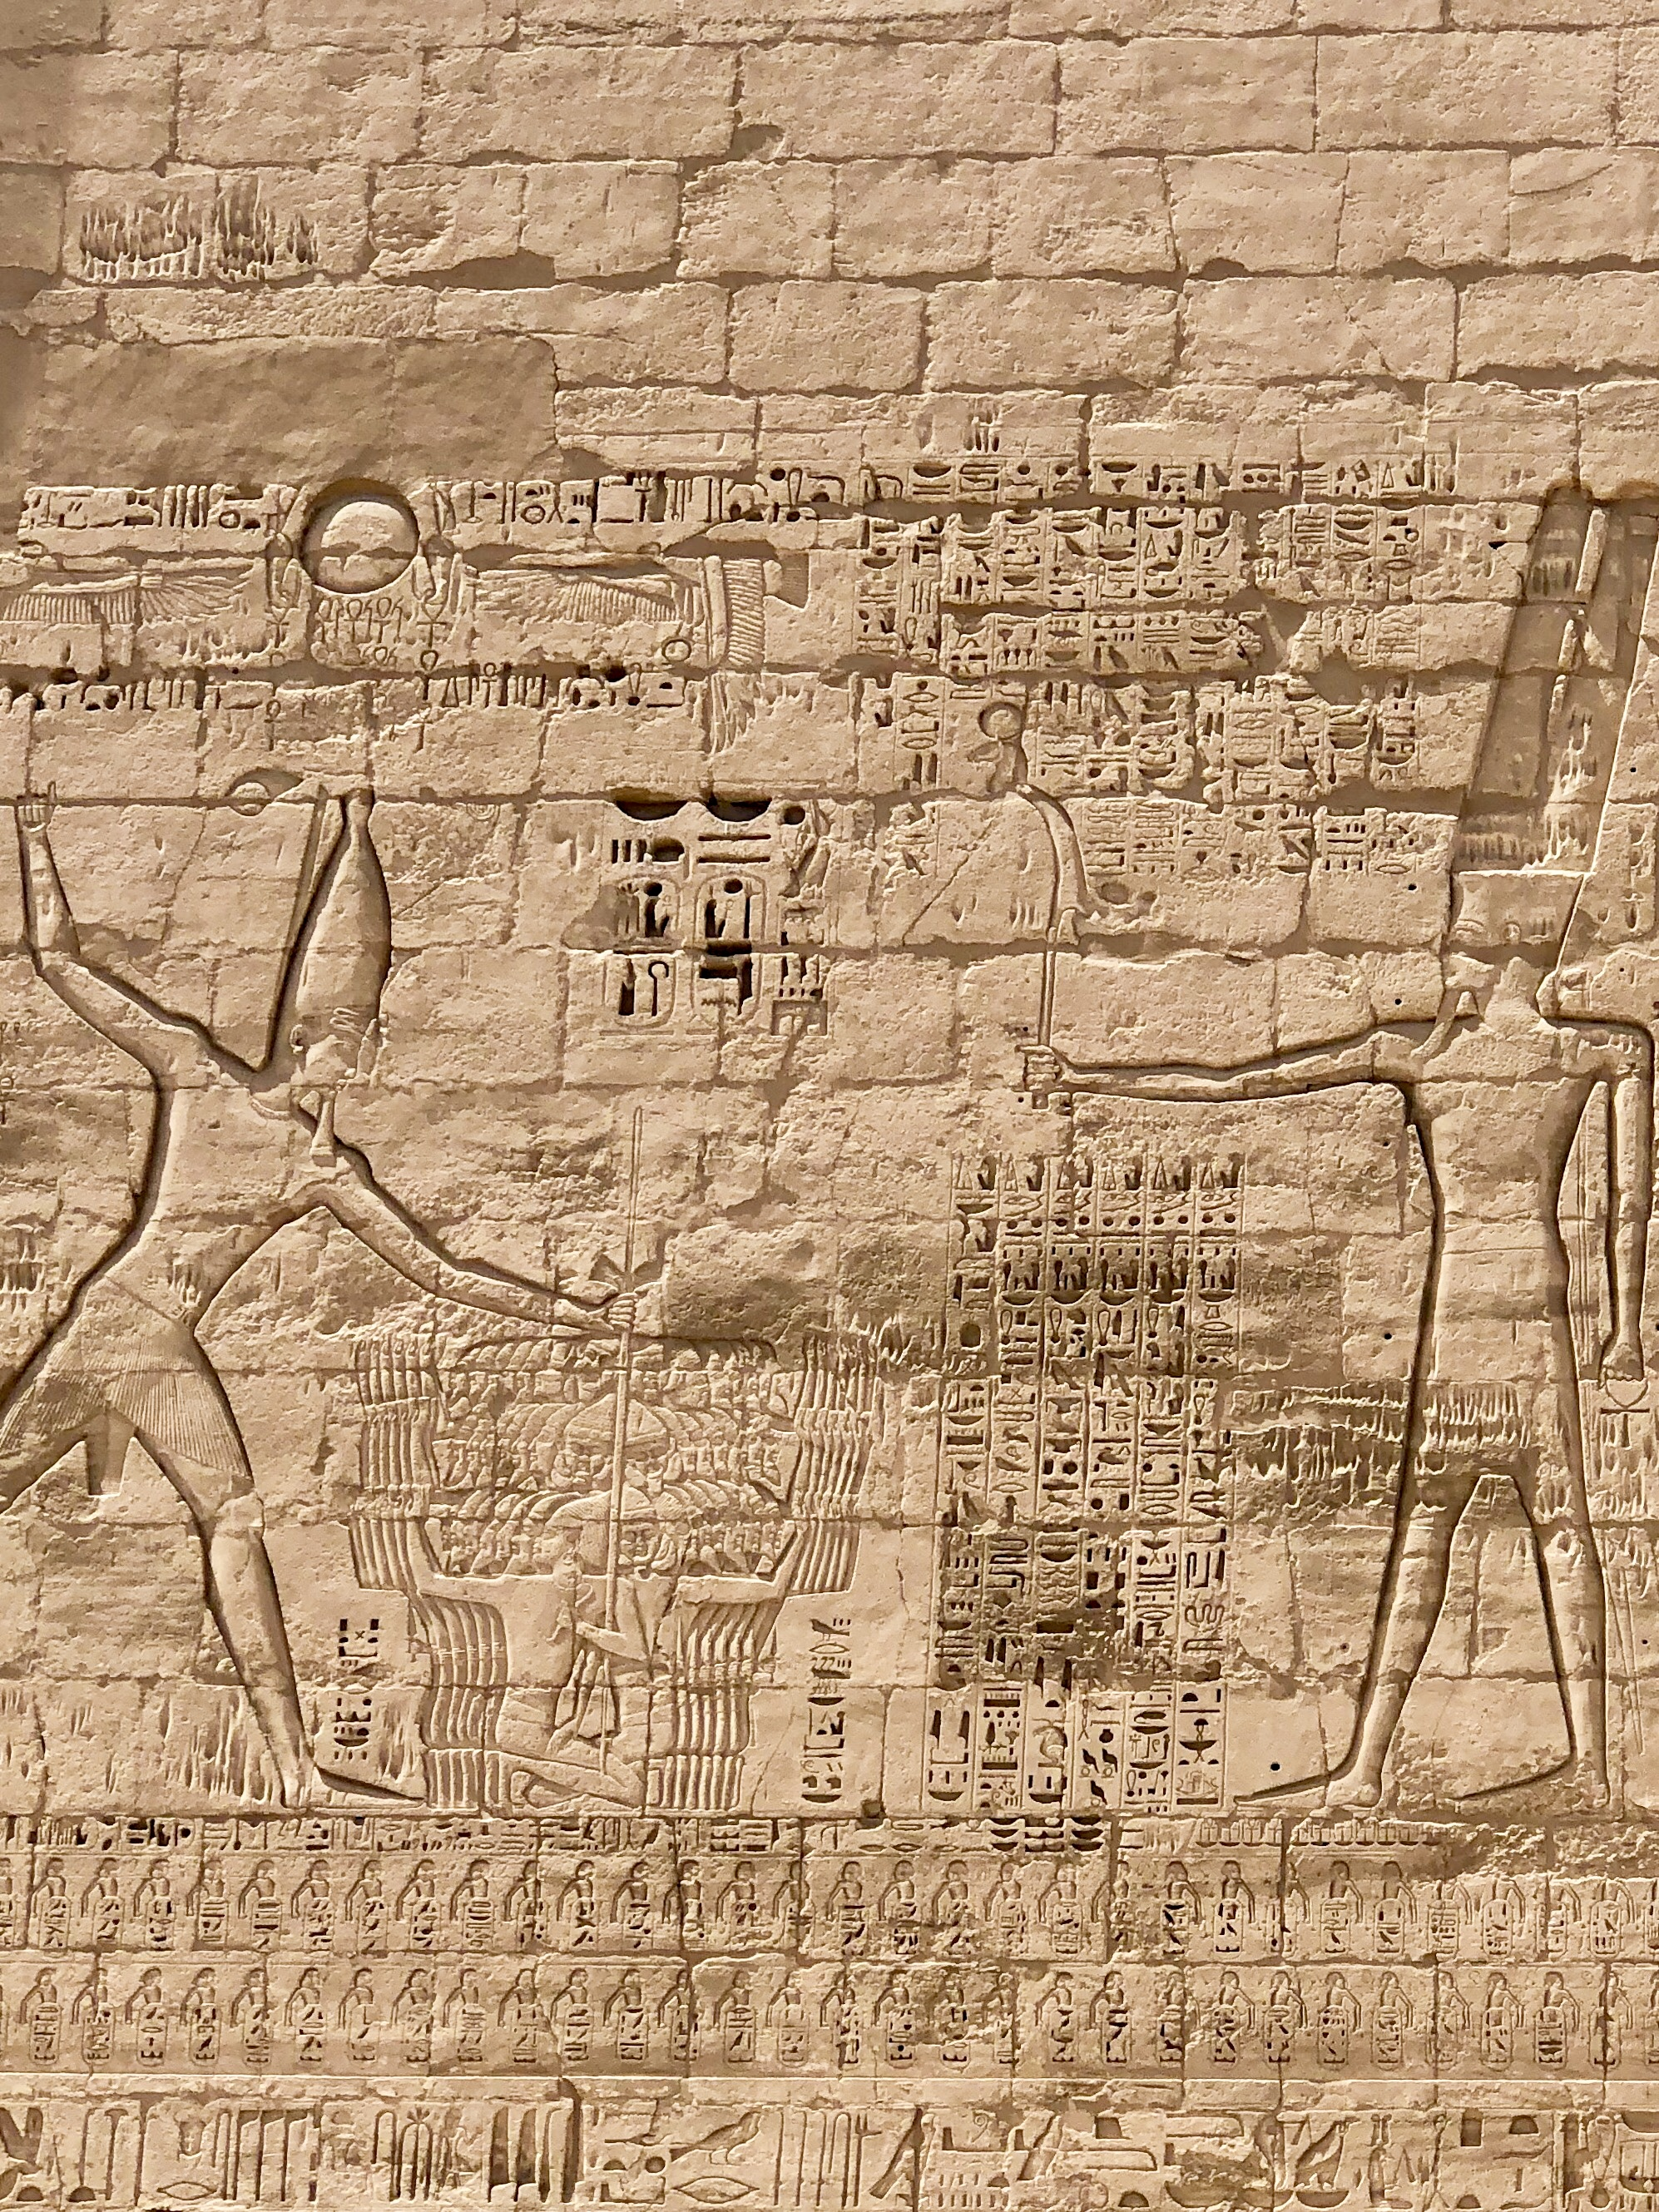 If you defeat warriors who were undefeated, you brag about it, like Ramesses III did